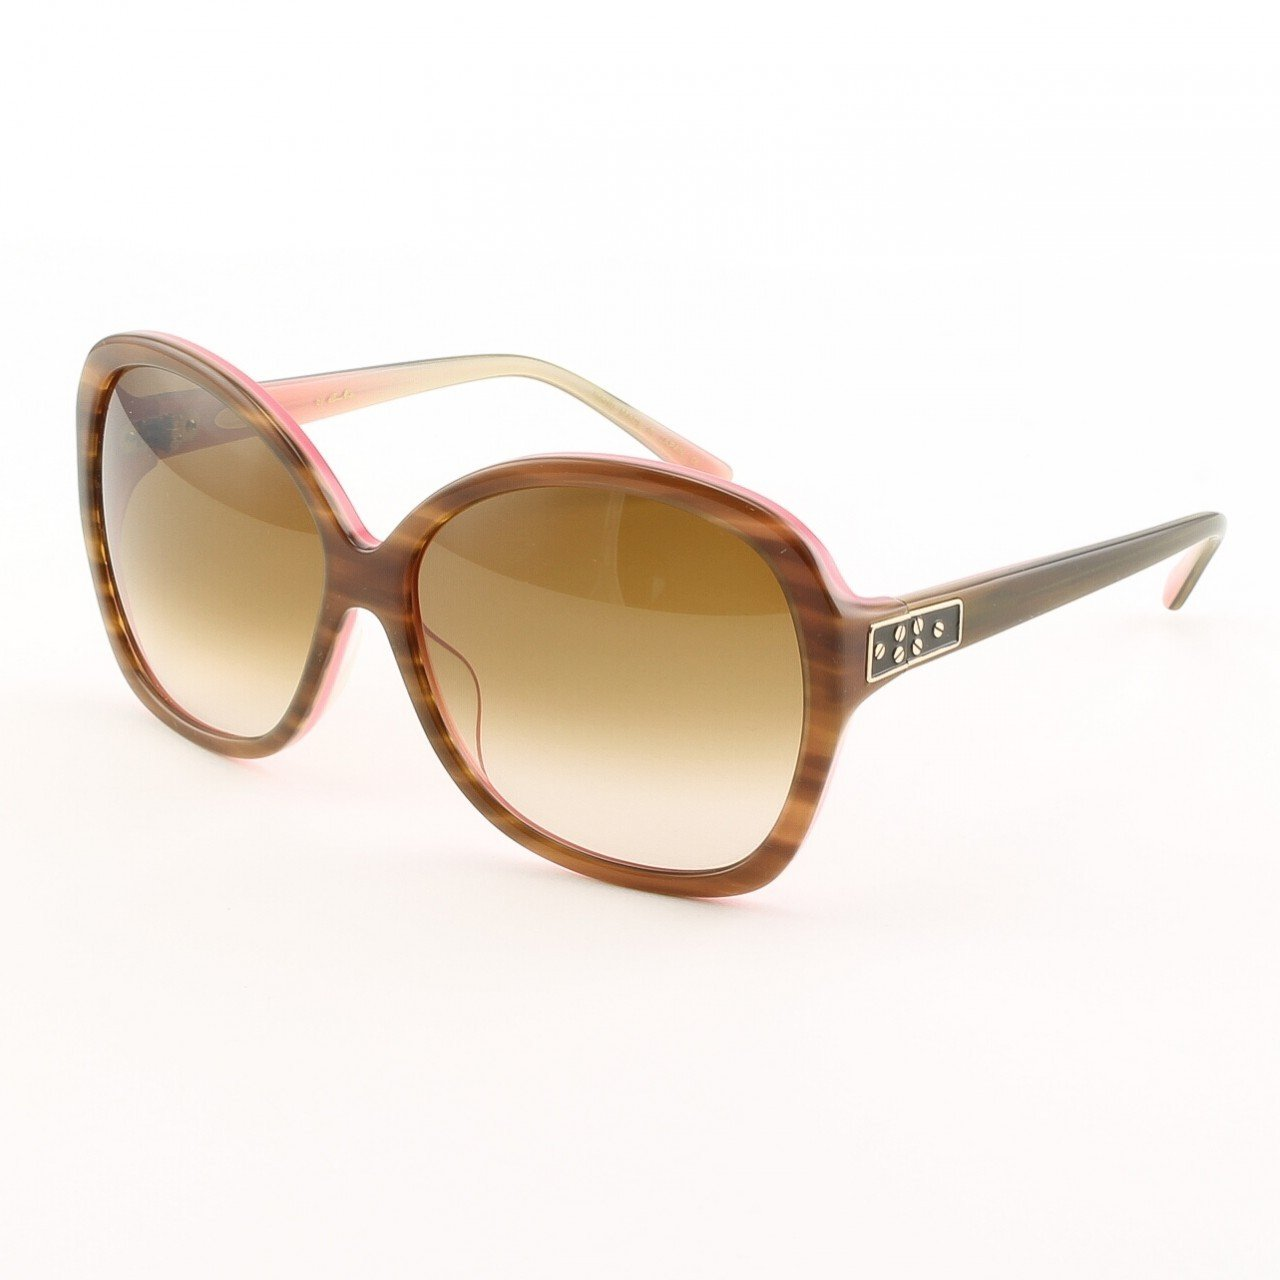 Blinde Now Where Were We Women's Sunglasses Col. Tortoise Flamingo with Brown Gradient Lenses